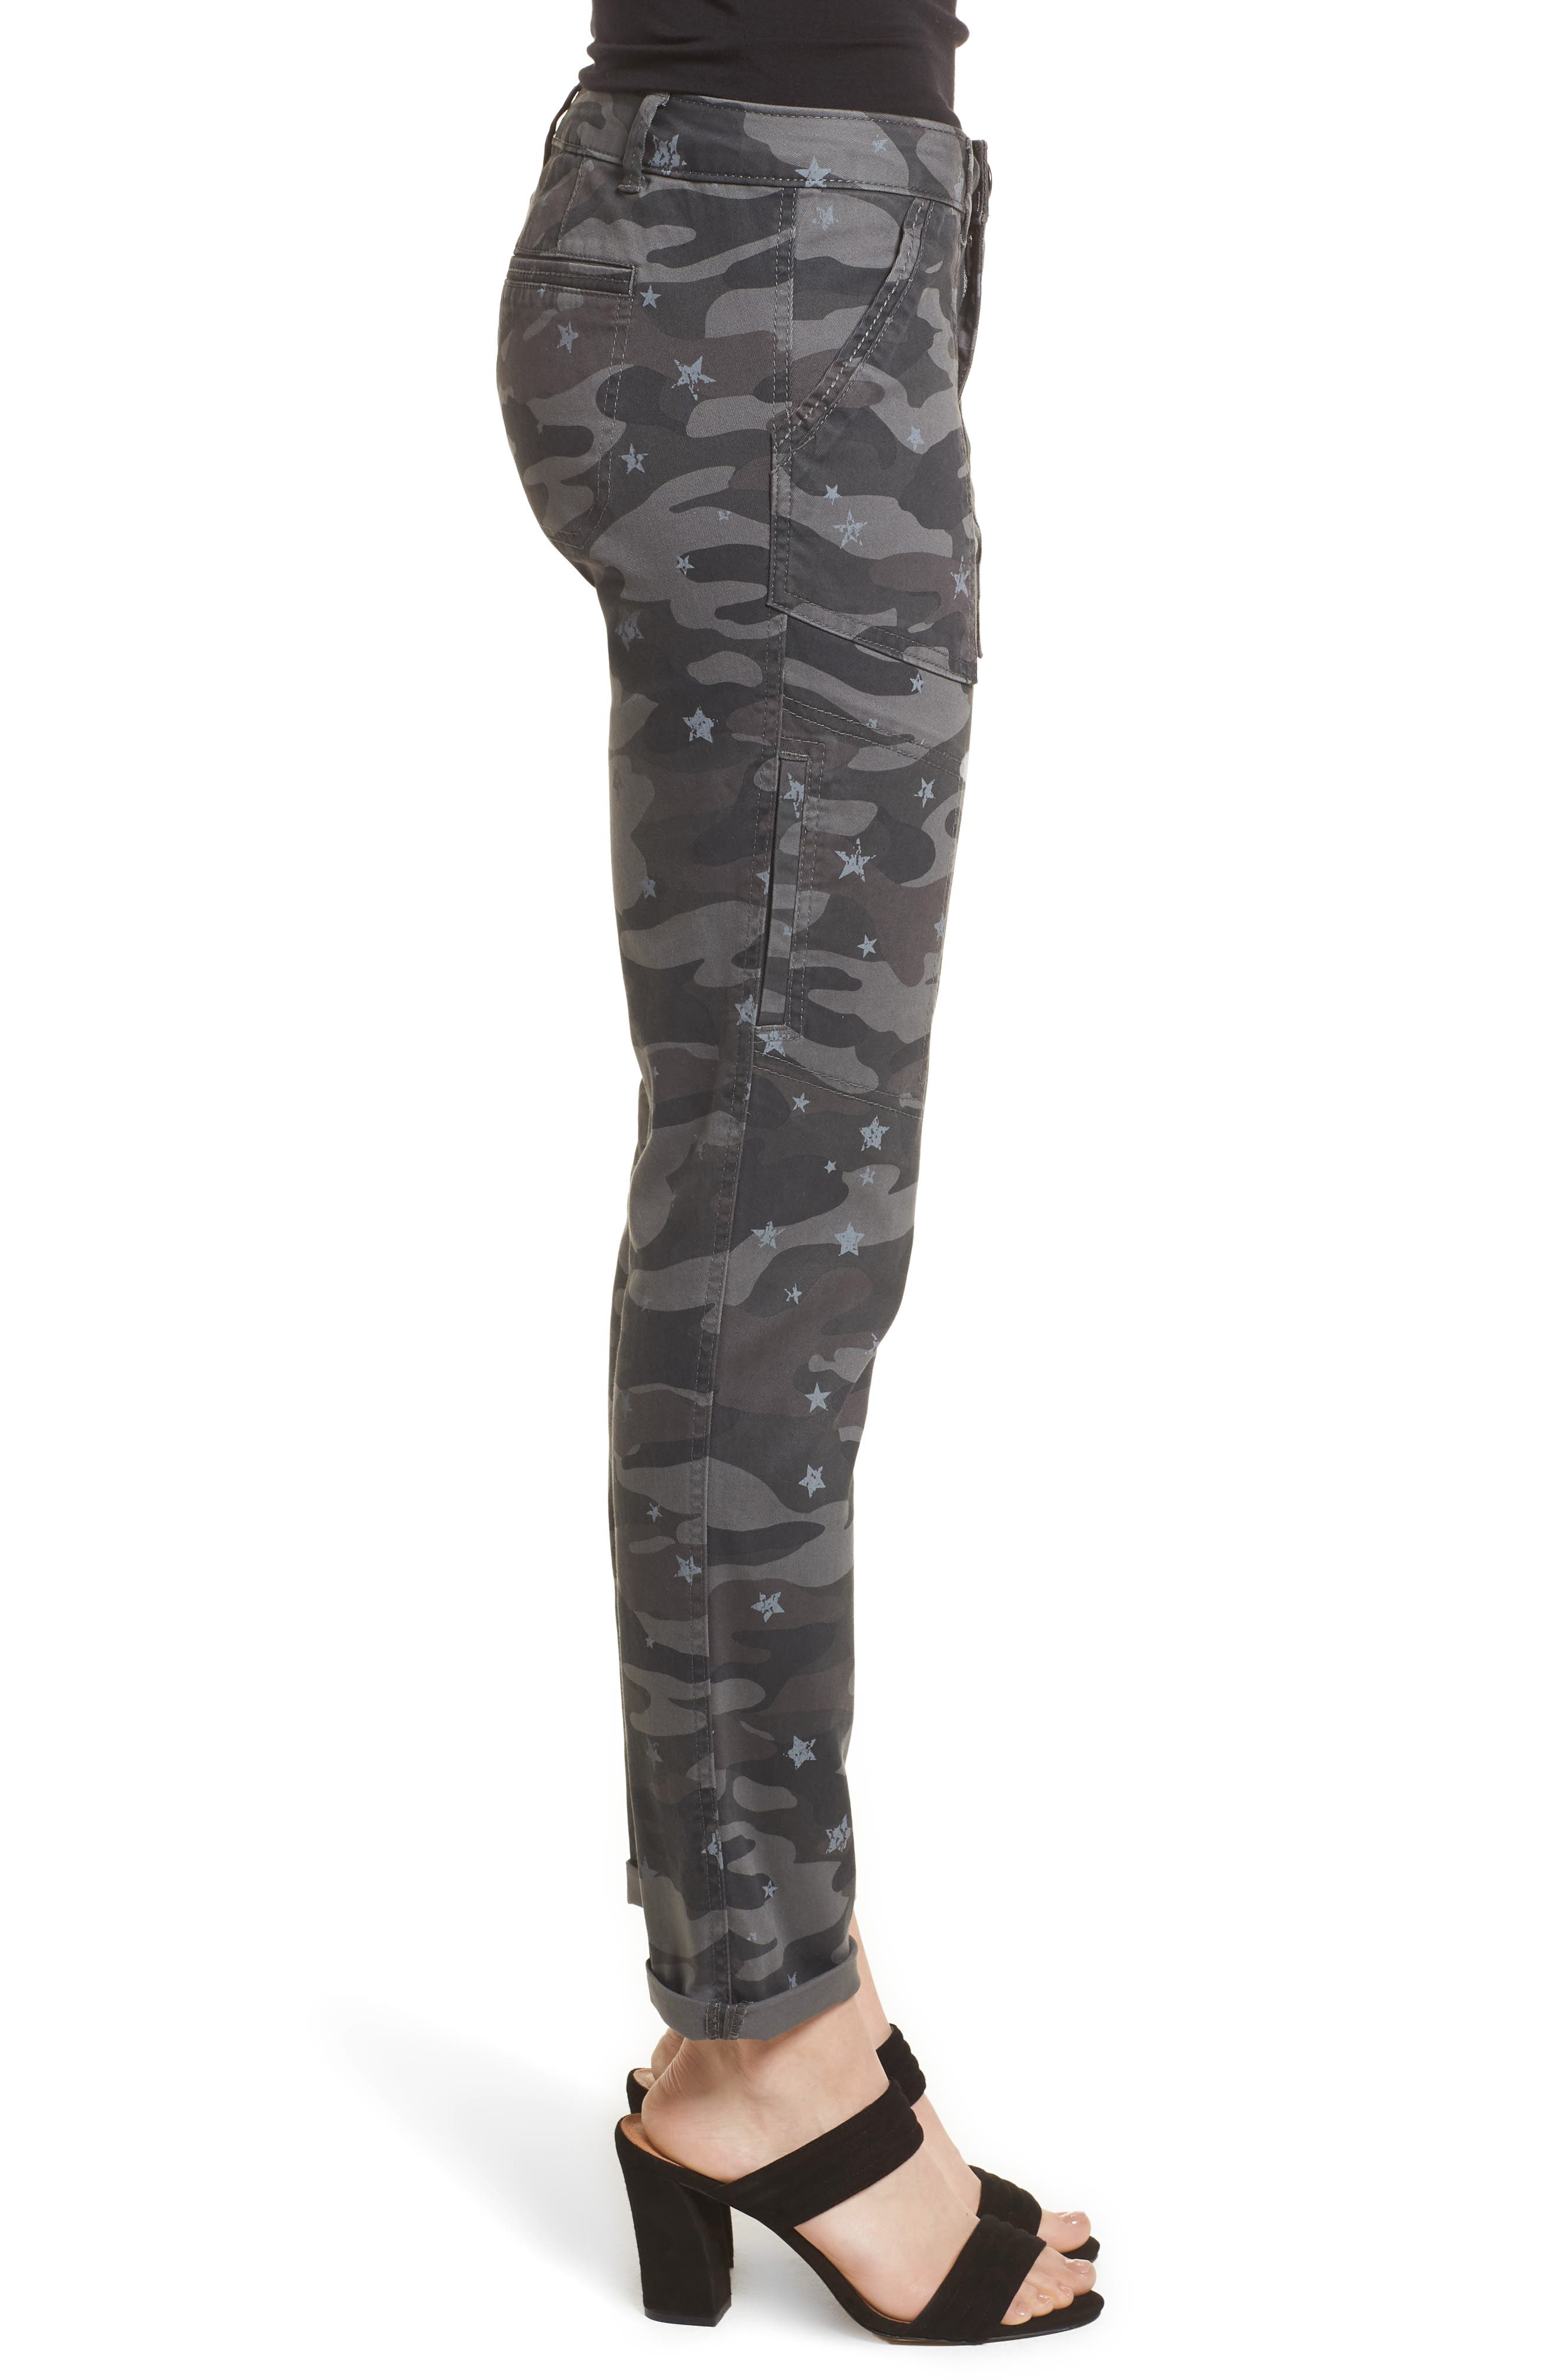 Twill Star Camo Cargo Pants,                             Alternate thumbnail 3, color,                             Cc- Charcoal